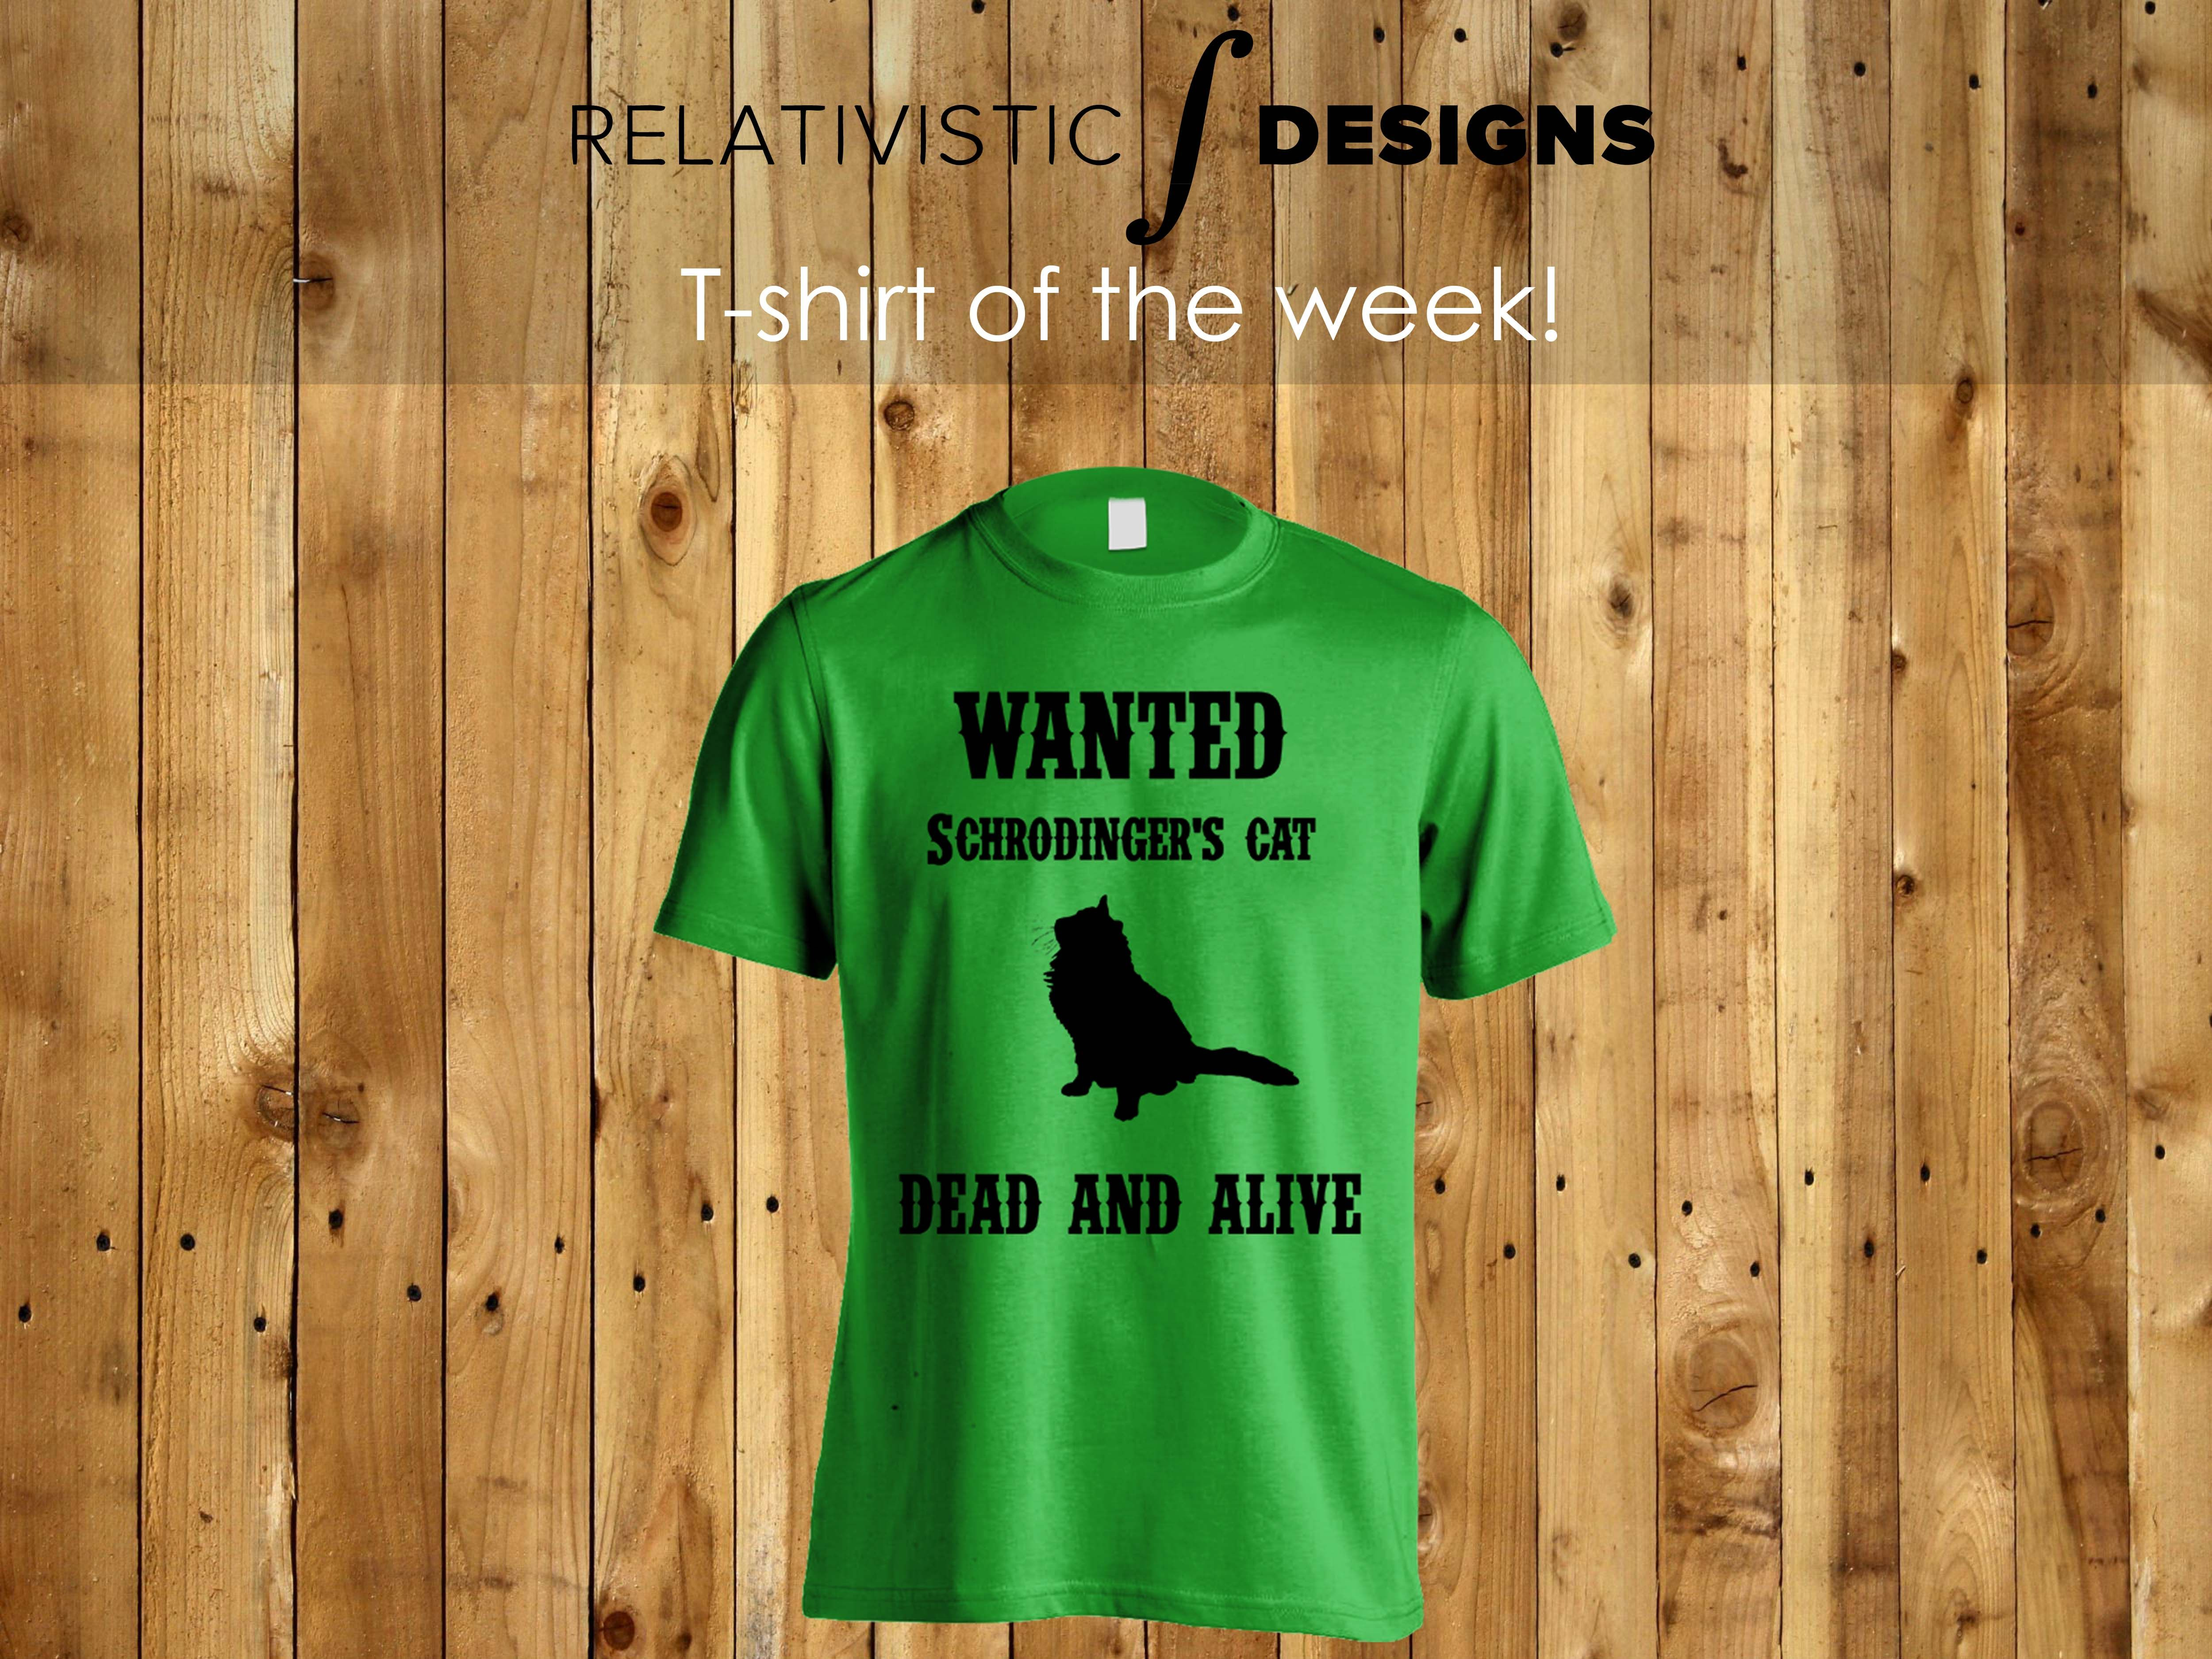 Schrodinger's cat dead and alive| T-shirt of the Week